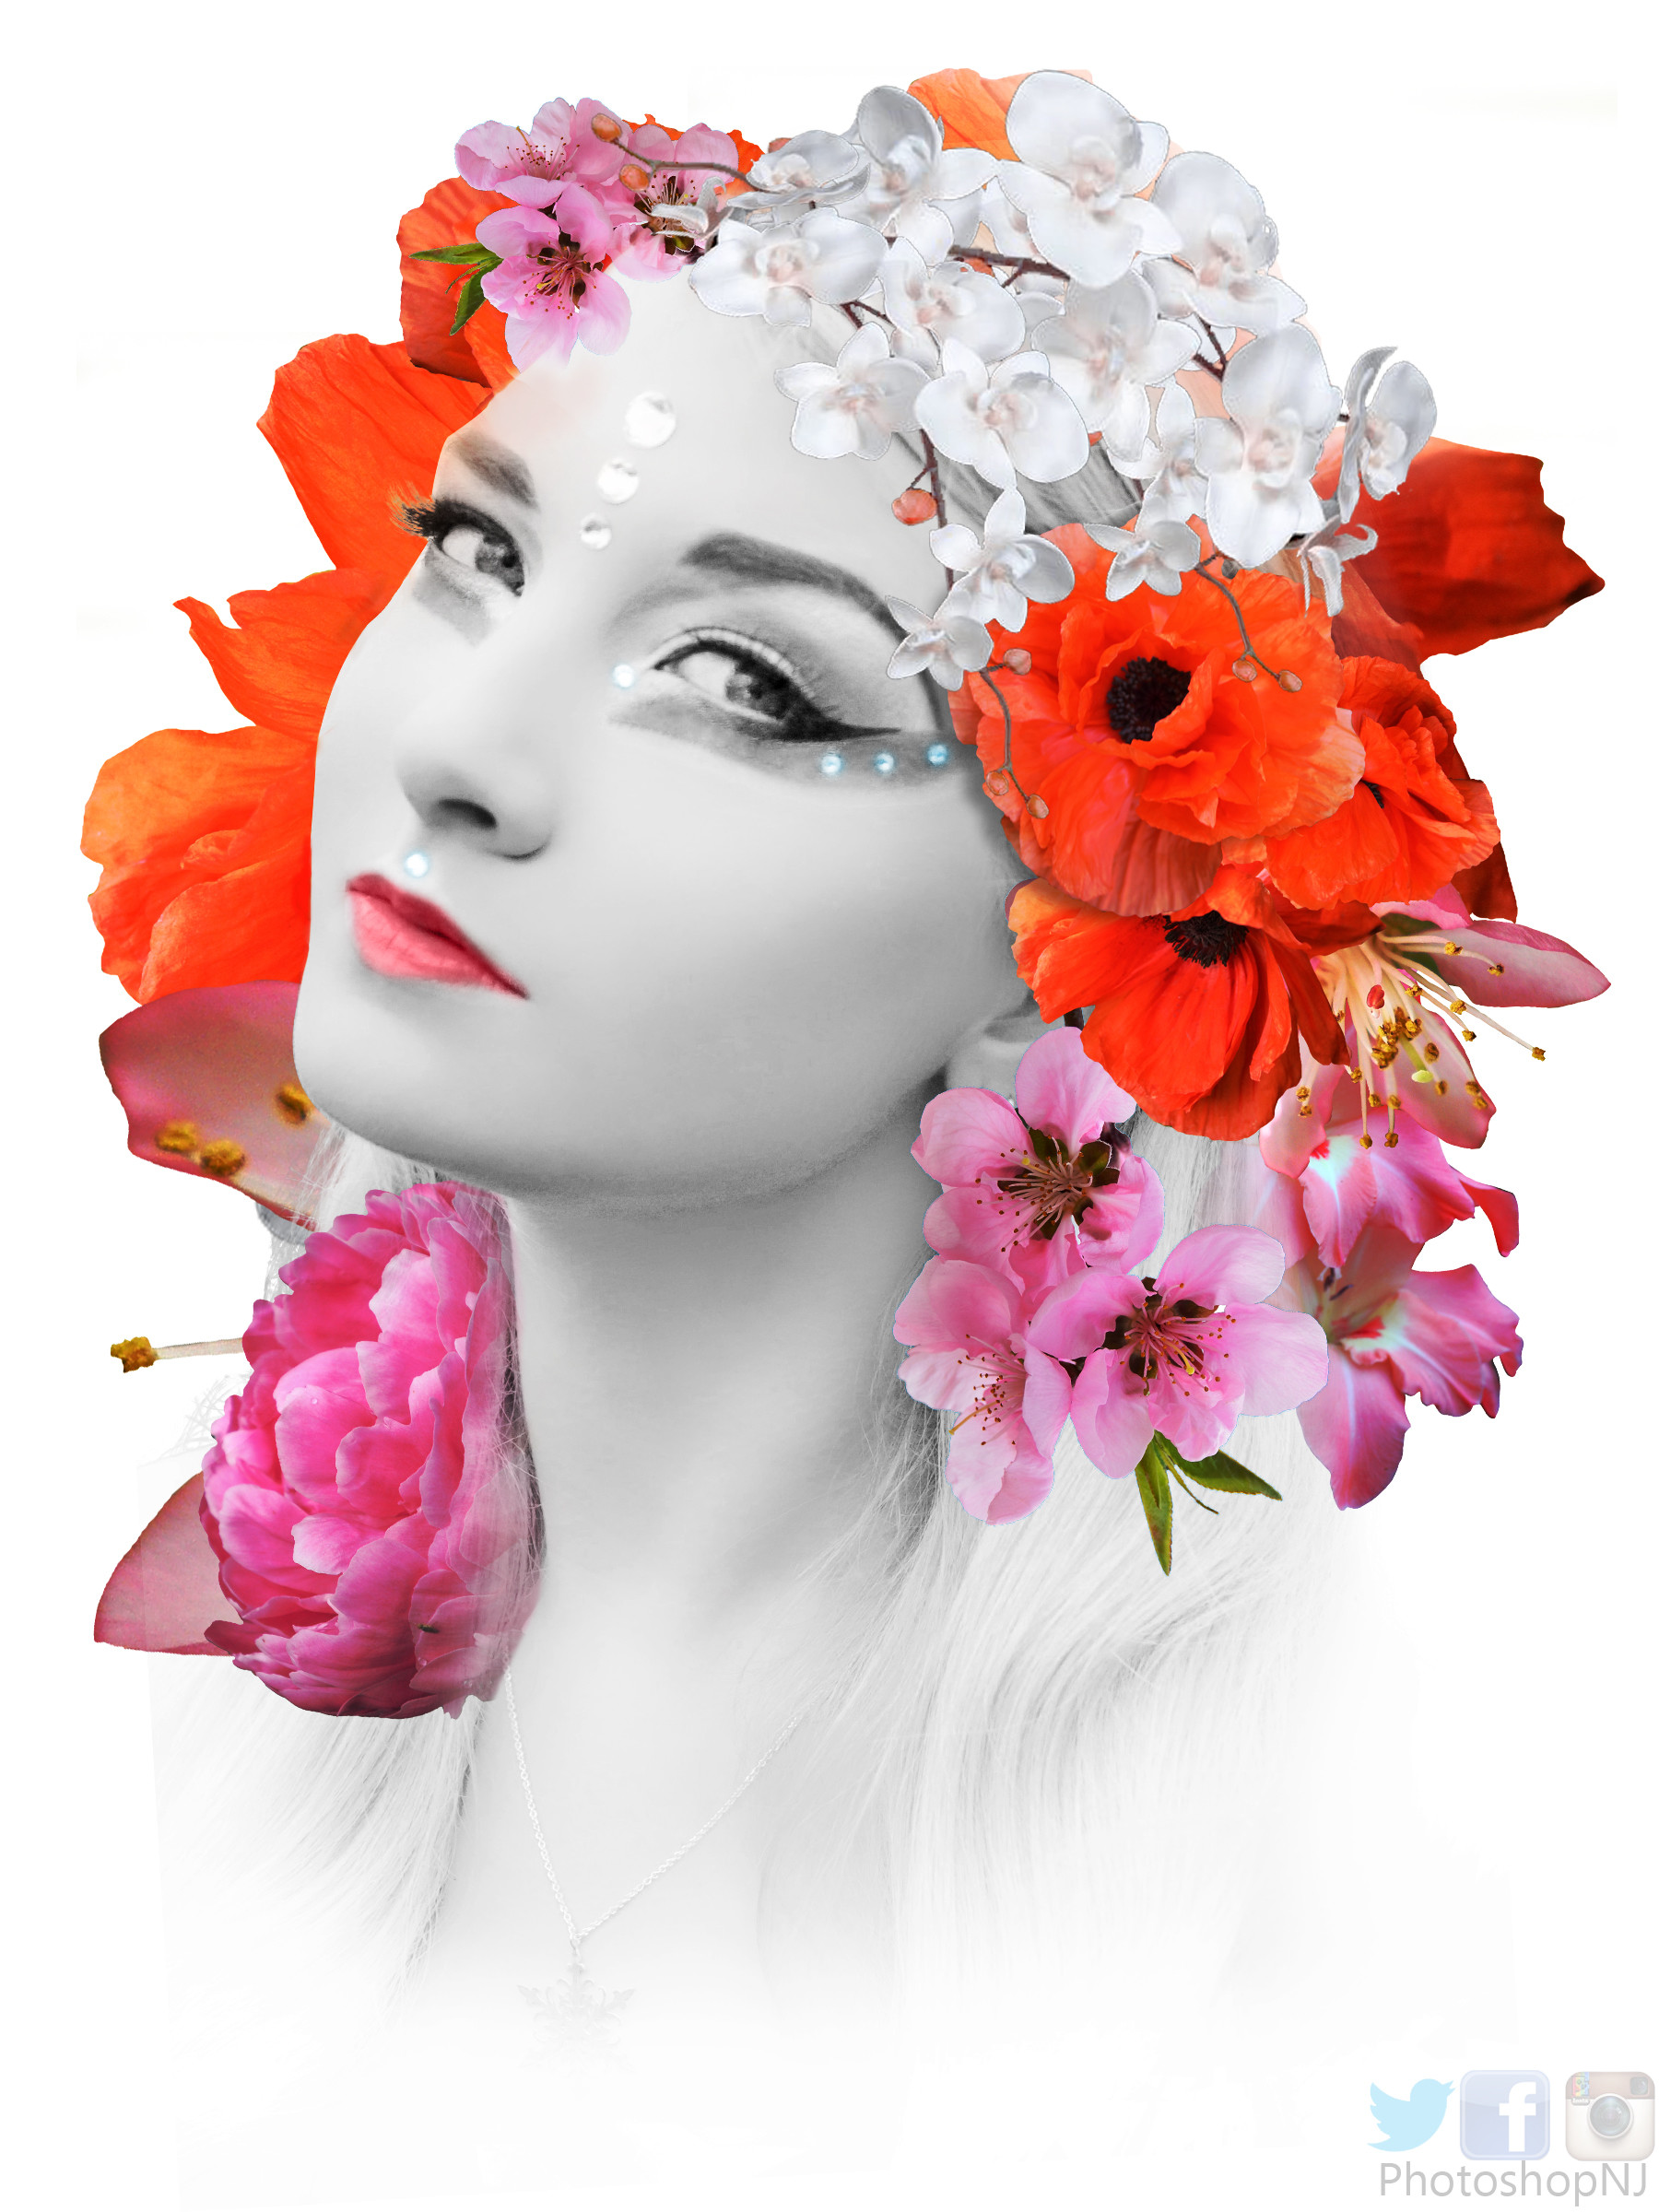 Niranjan Mondal - FLORAL DESIGN ART | PHOTO MANIPULATION PHOTOSHOP